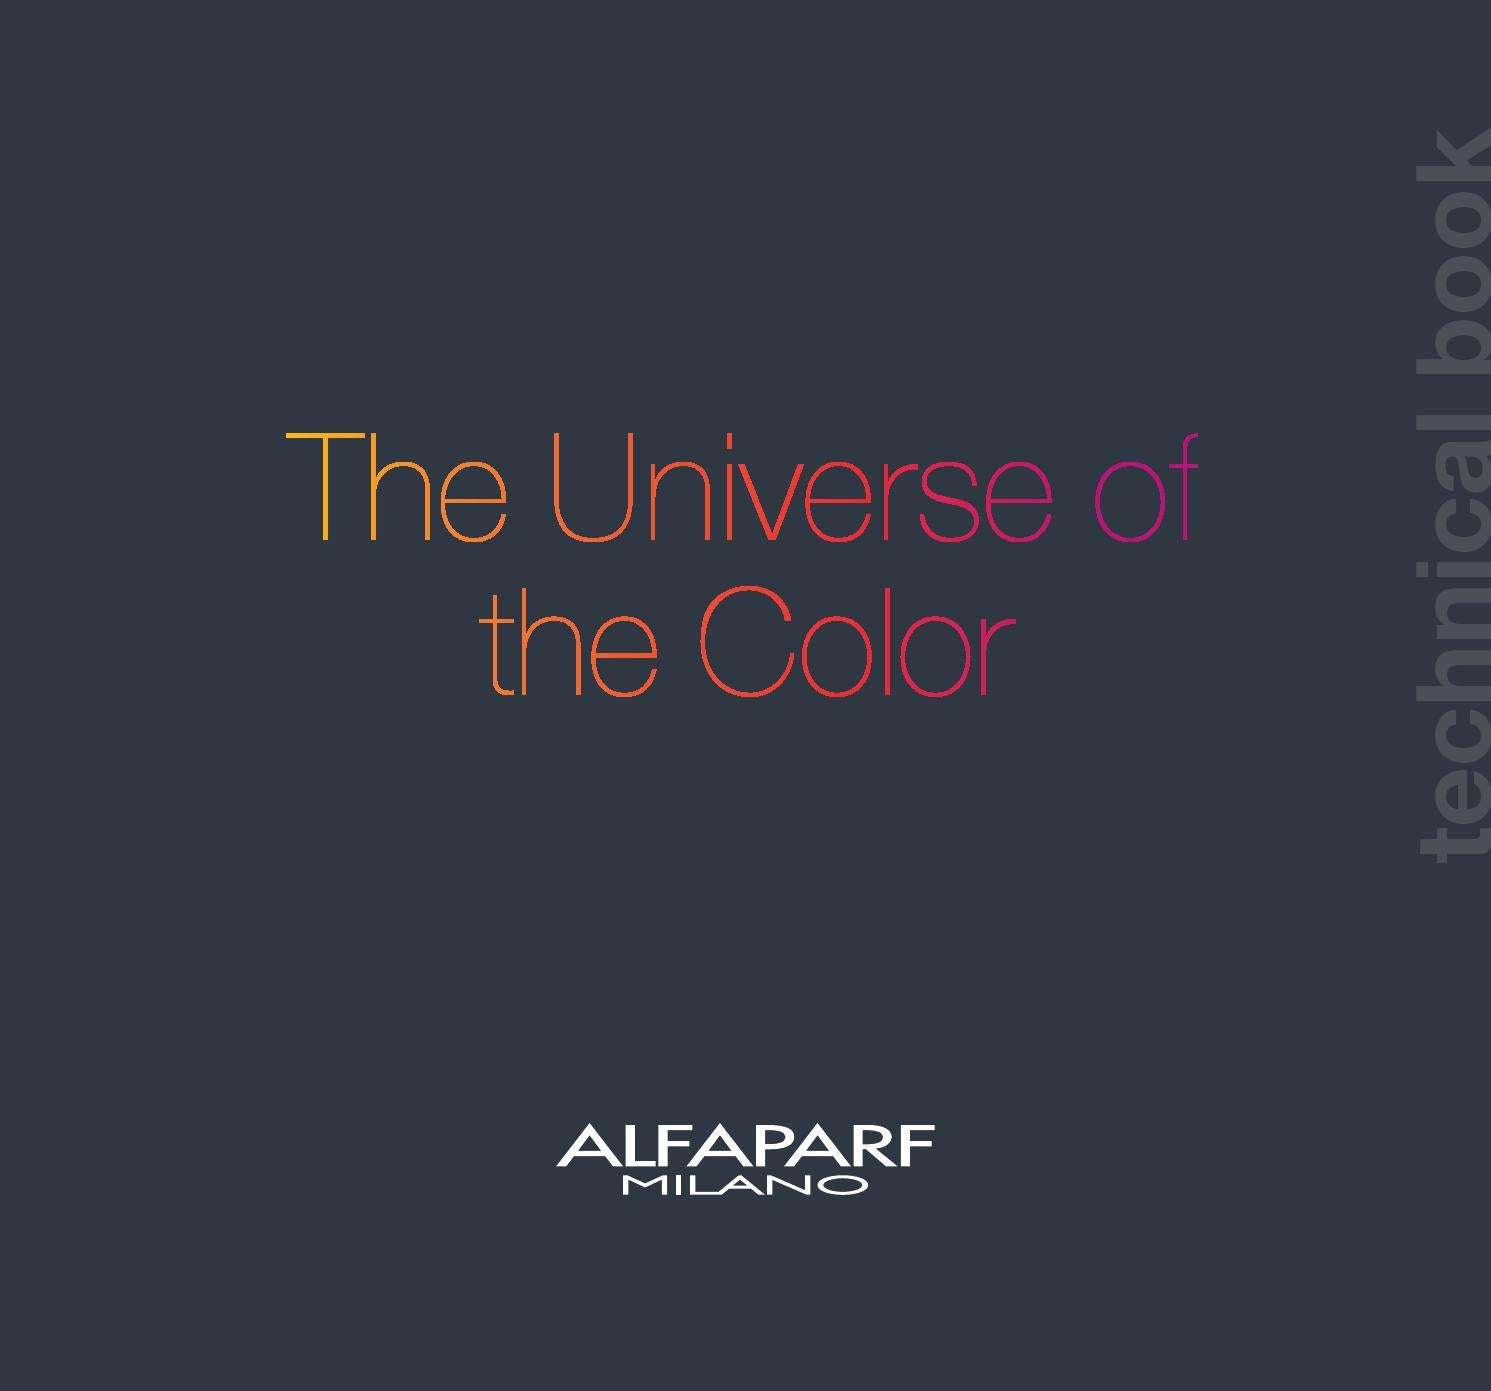 Alfaparf milano usa the universe of color technical book 2016 by alfaparf milano usa the universe of color technical book 2016 by alfaparf milano usa issuu nvjuhfo Images